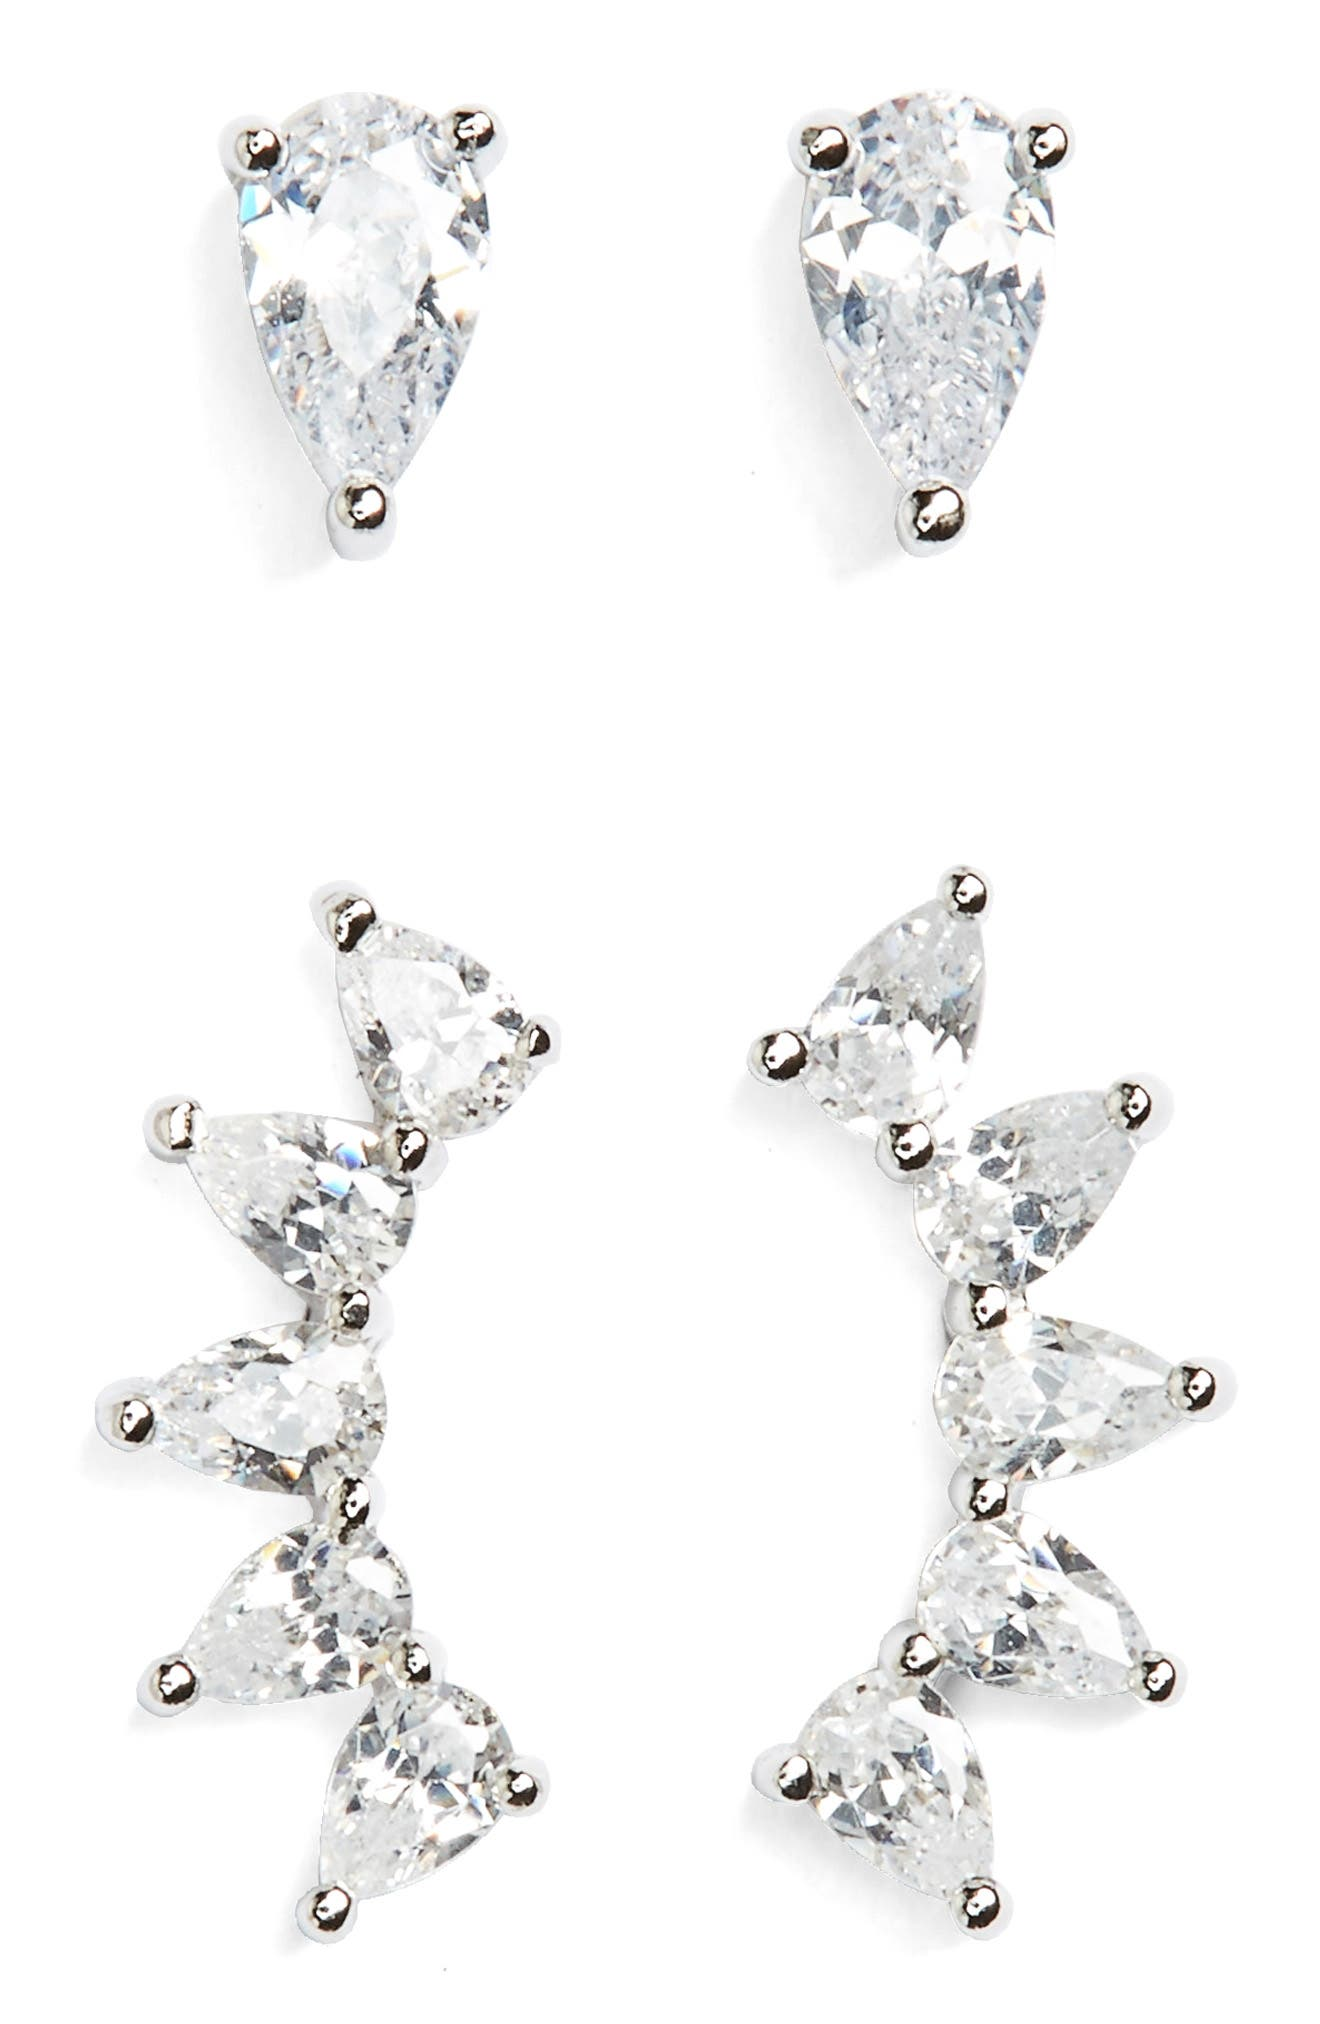 Set of 2 Pear Marquise Cubic Zirconia Earrings,                         Main,                         color, Platinum